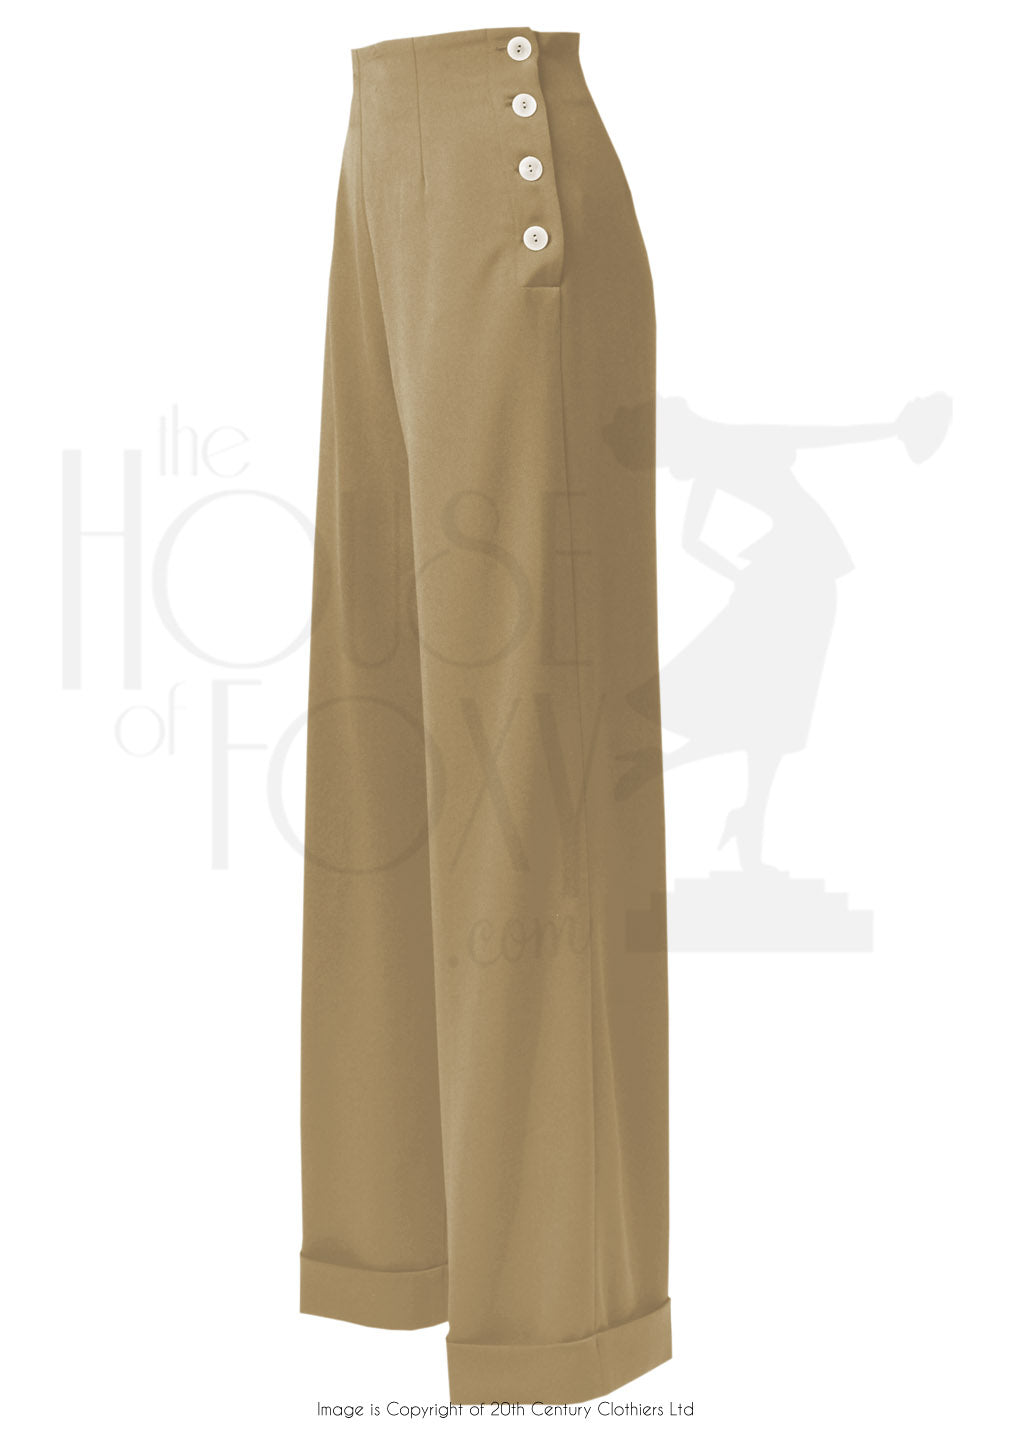 House of Foxy 1940s Swing Pants in Light Tan